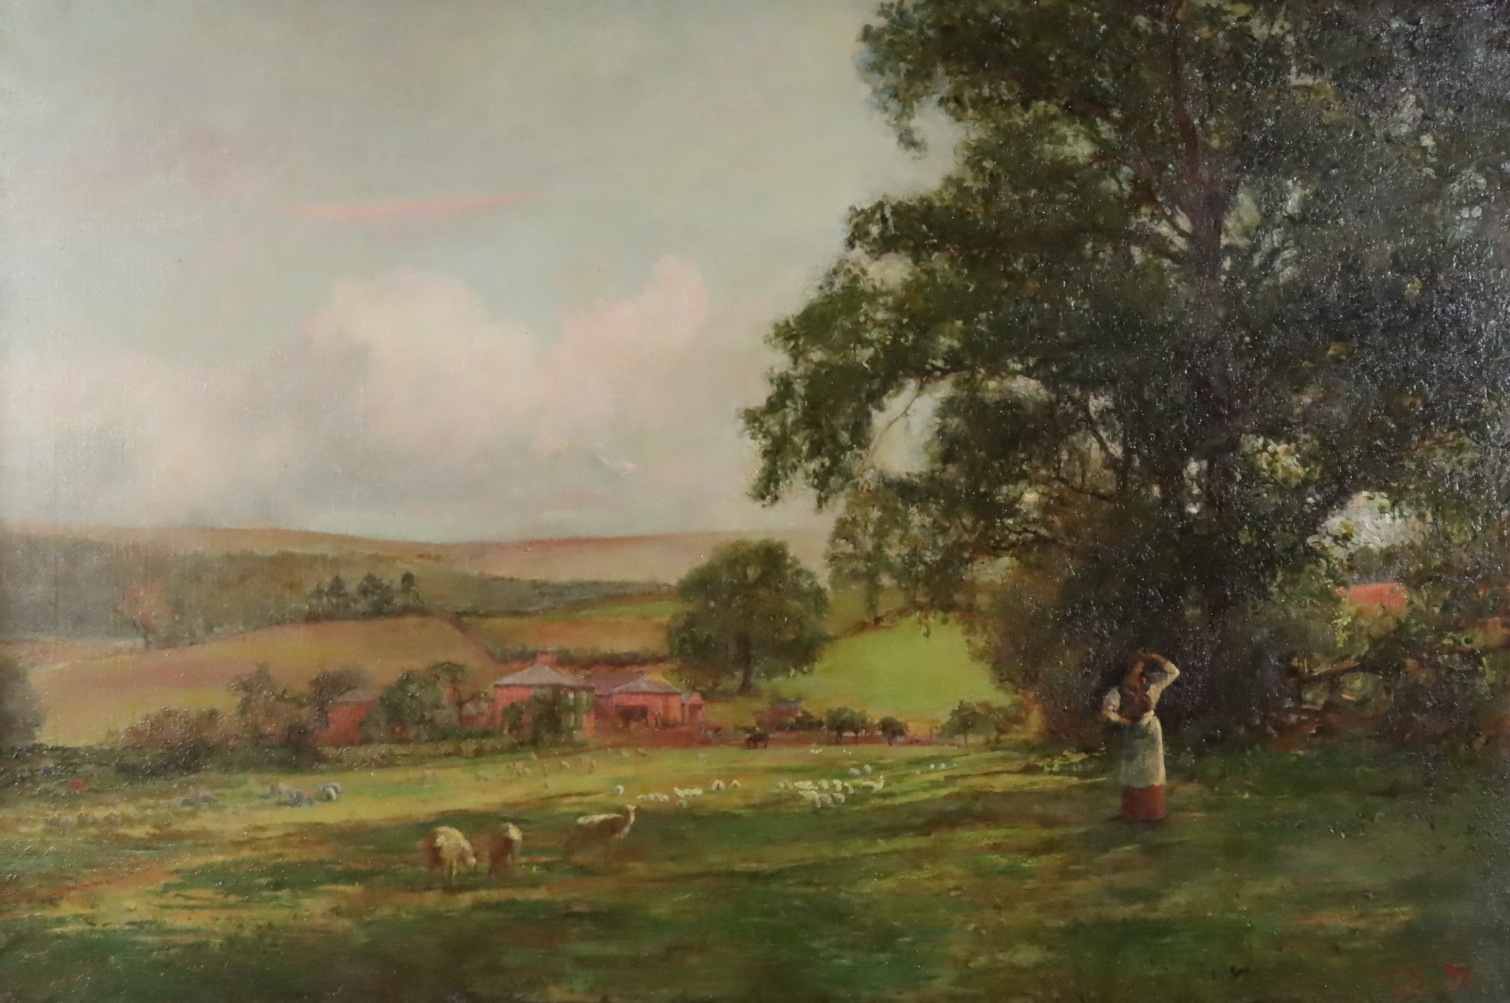 Charles Sims (1873-1928) - Oil painting - Rural landscape (thought to be Lodsworth, West Sussex),